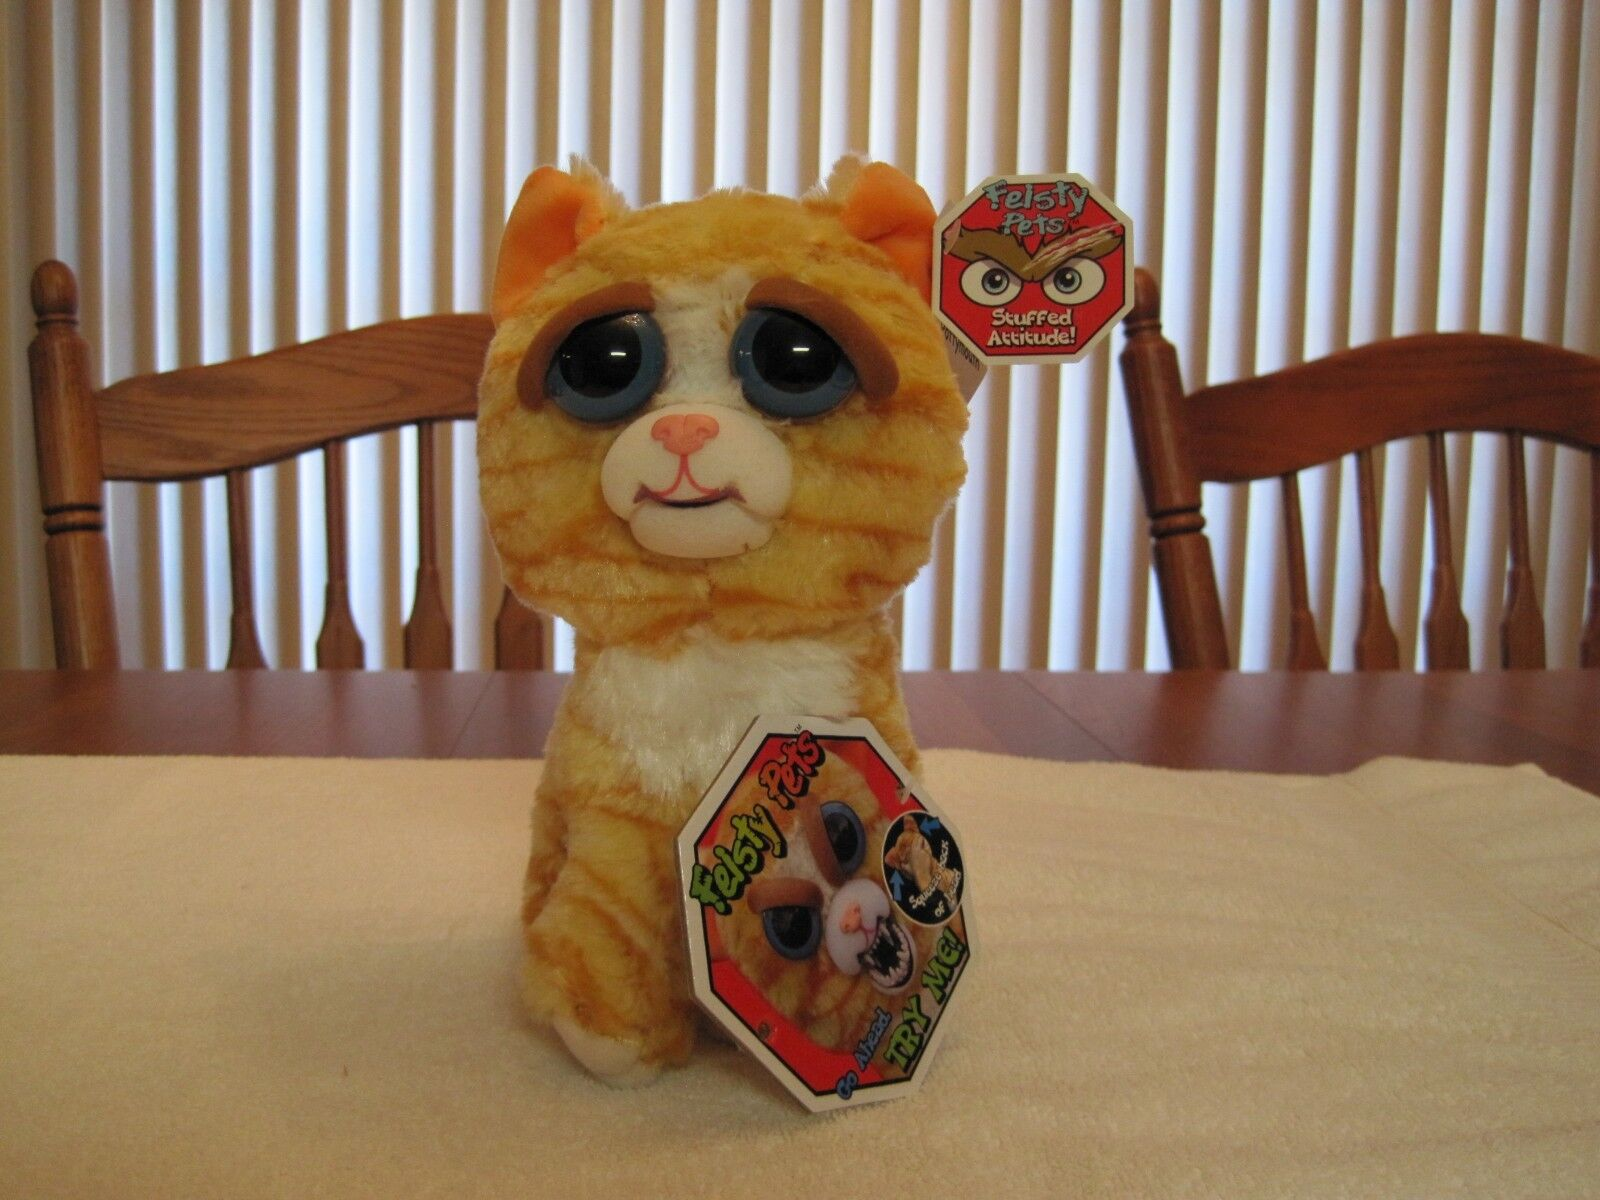 FEISTY PETS BY WILLIAM MARK PRINCESS POTTYMOUTH POTTYMOUTH POTTYMOUTH PLUSH STUFFED CAT--NEW WITH TAGS 3bf567